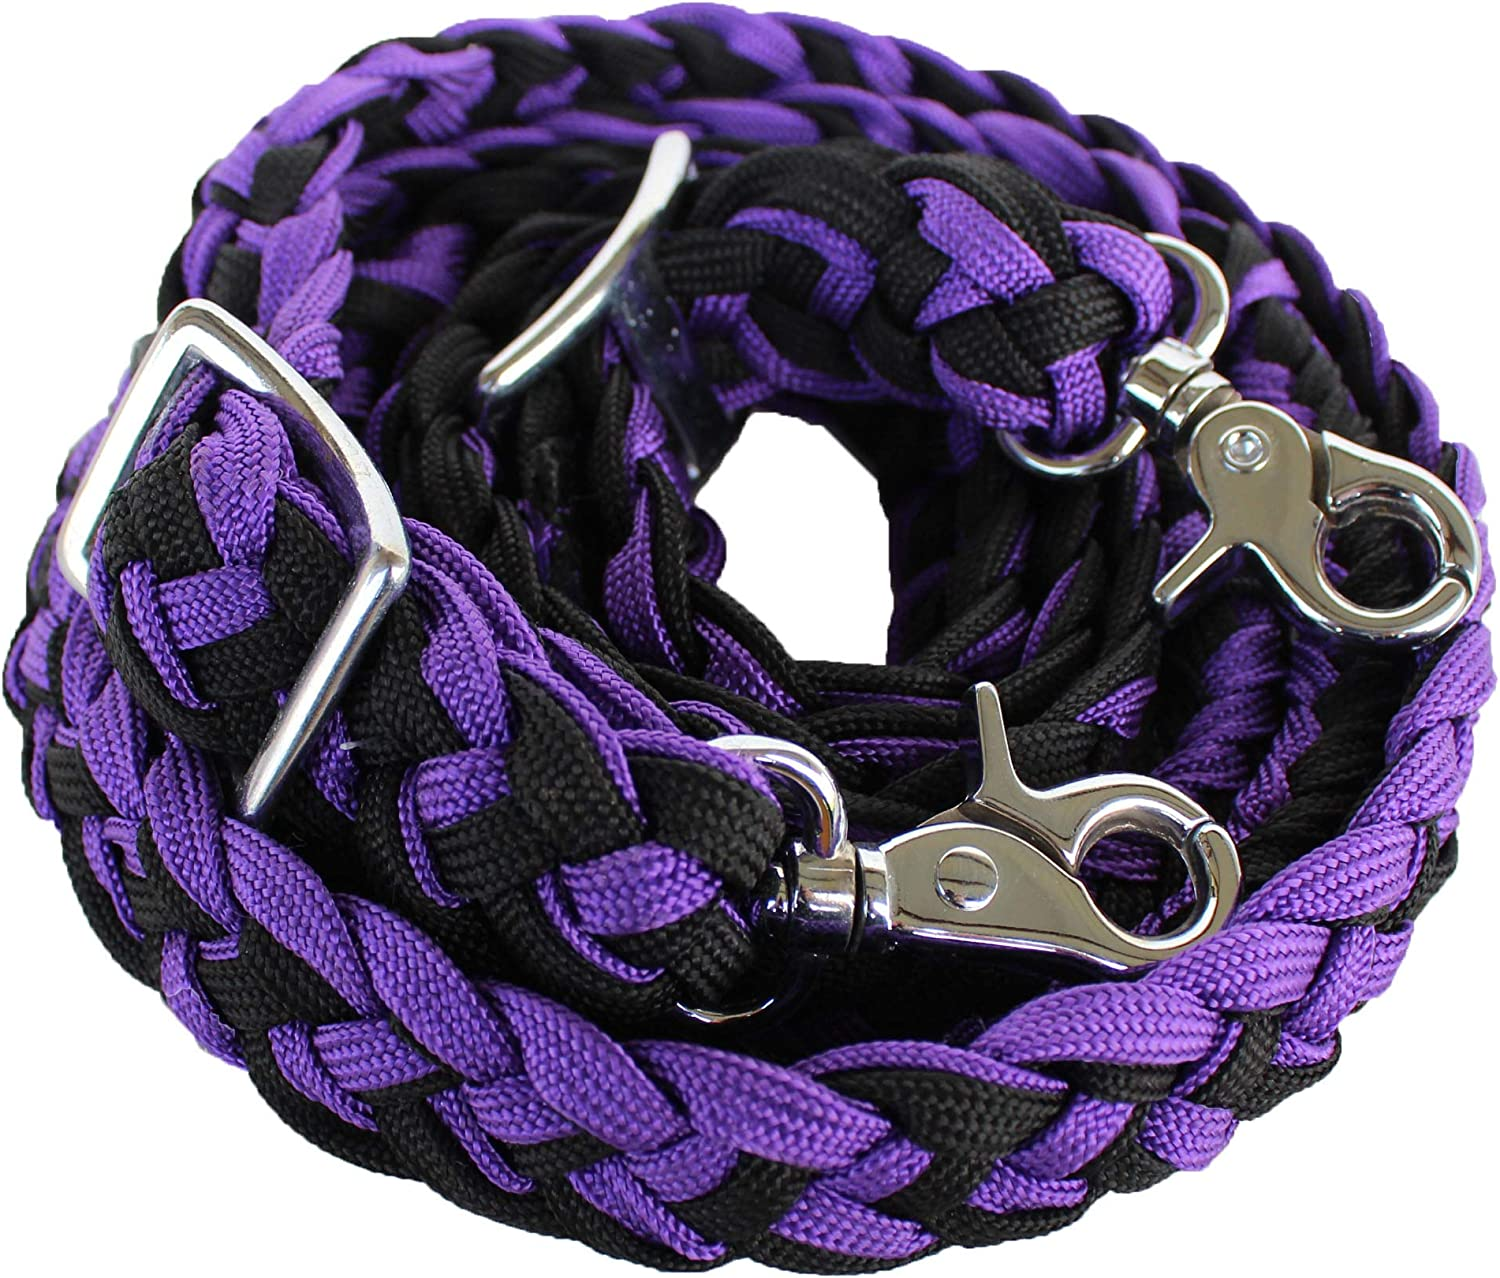 CHALLENGER Roping Knotted Horse Tack Barrel Nylon Direct sale of manufacturer Max 90% OFF Reins Western